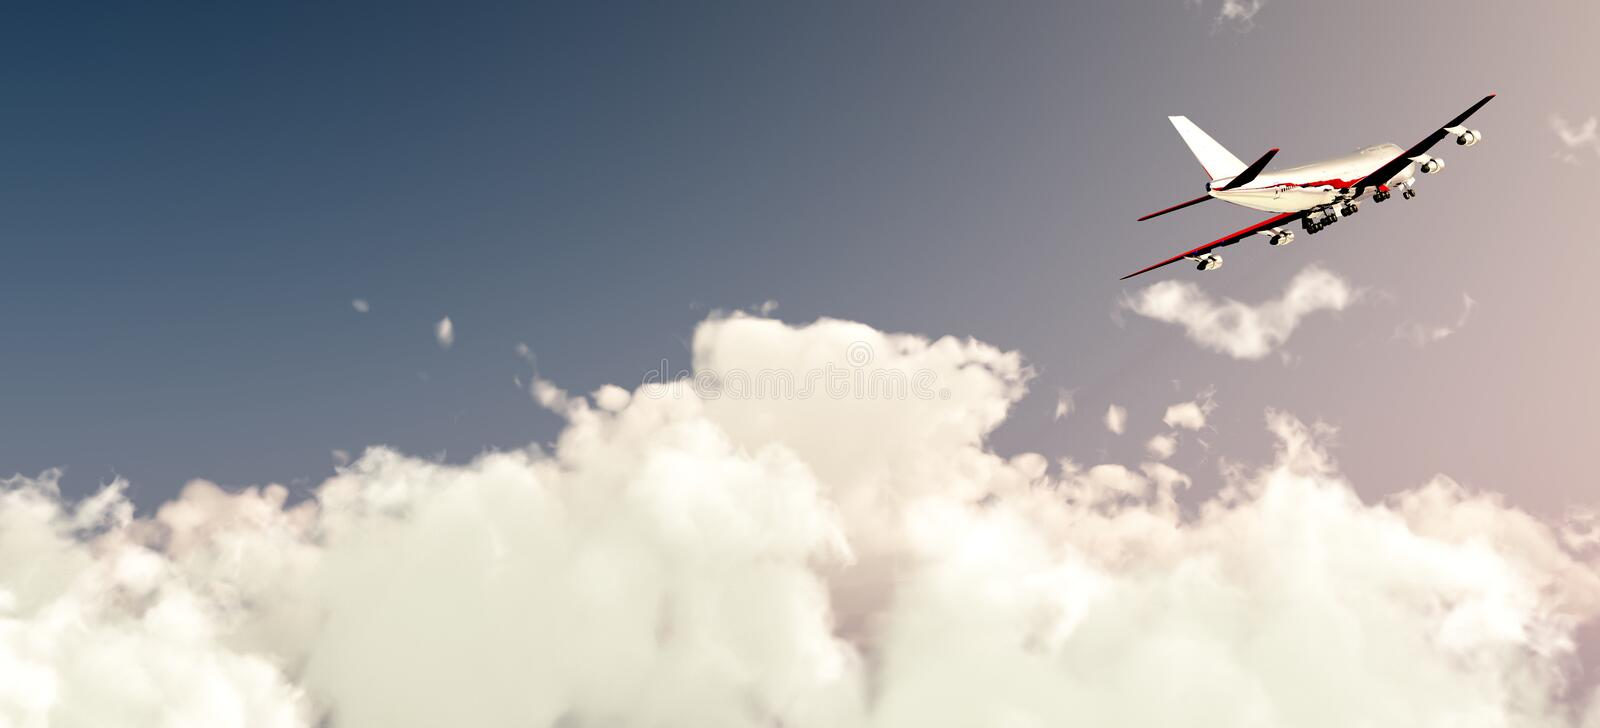 Download Plane Flying In Daylight Royalty Free Stock Photography - Image: 3877447